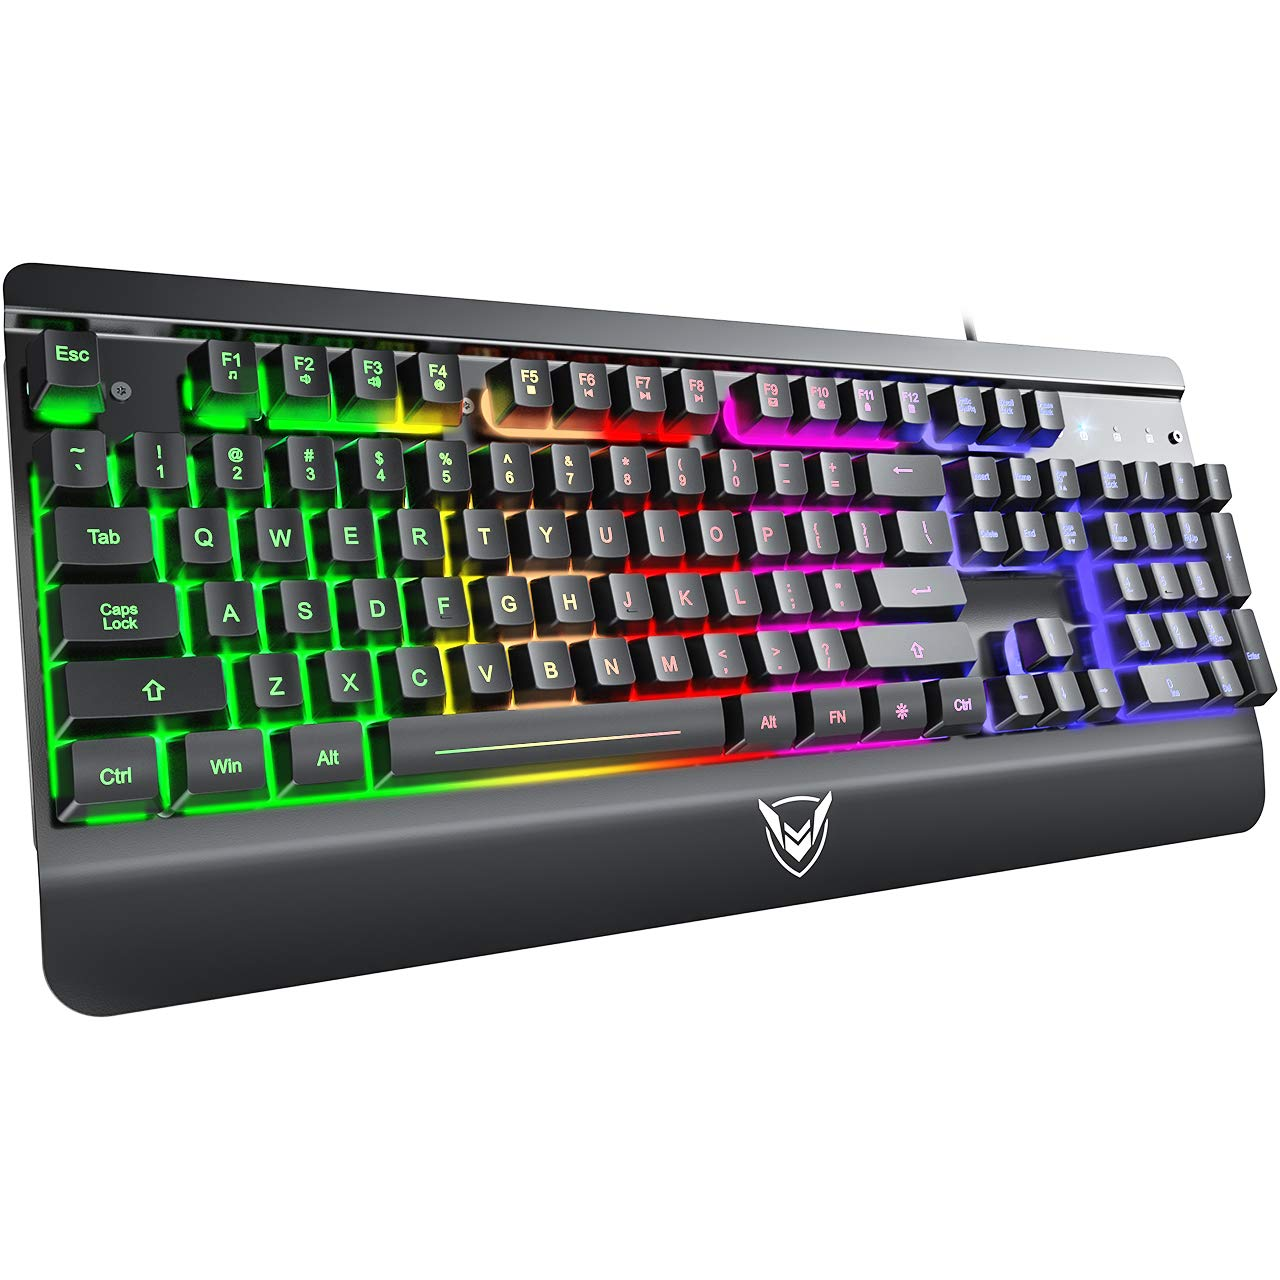 PICTEK Metal Gaming Keyboard, LED Wired Rainbow Keyboard, USB Backlit Membrane Keyboard with Wrist Rest, 19 Anti-ghosting Keys, 12 Multimedia Shortcuts, Spill-Resistant for Windows PC Gamer-Black